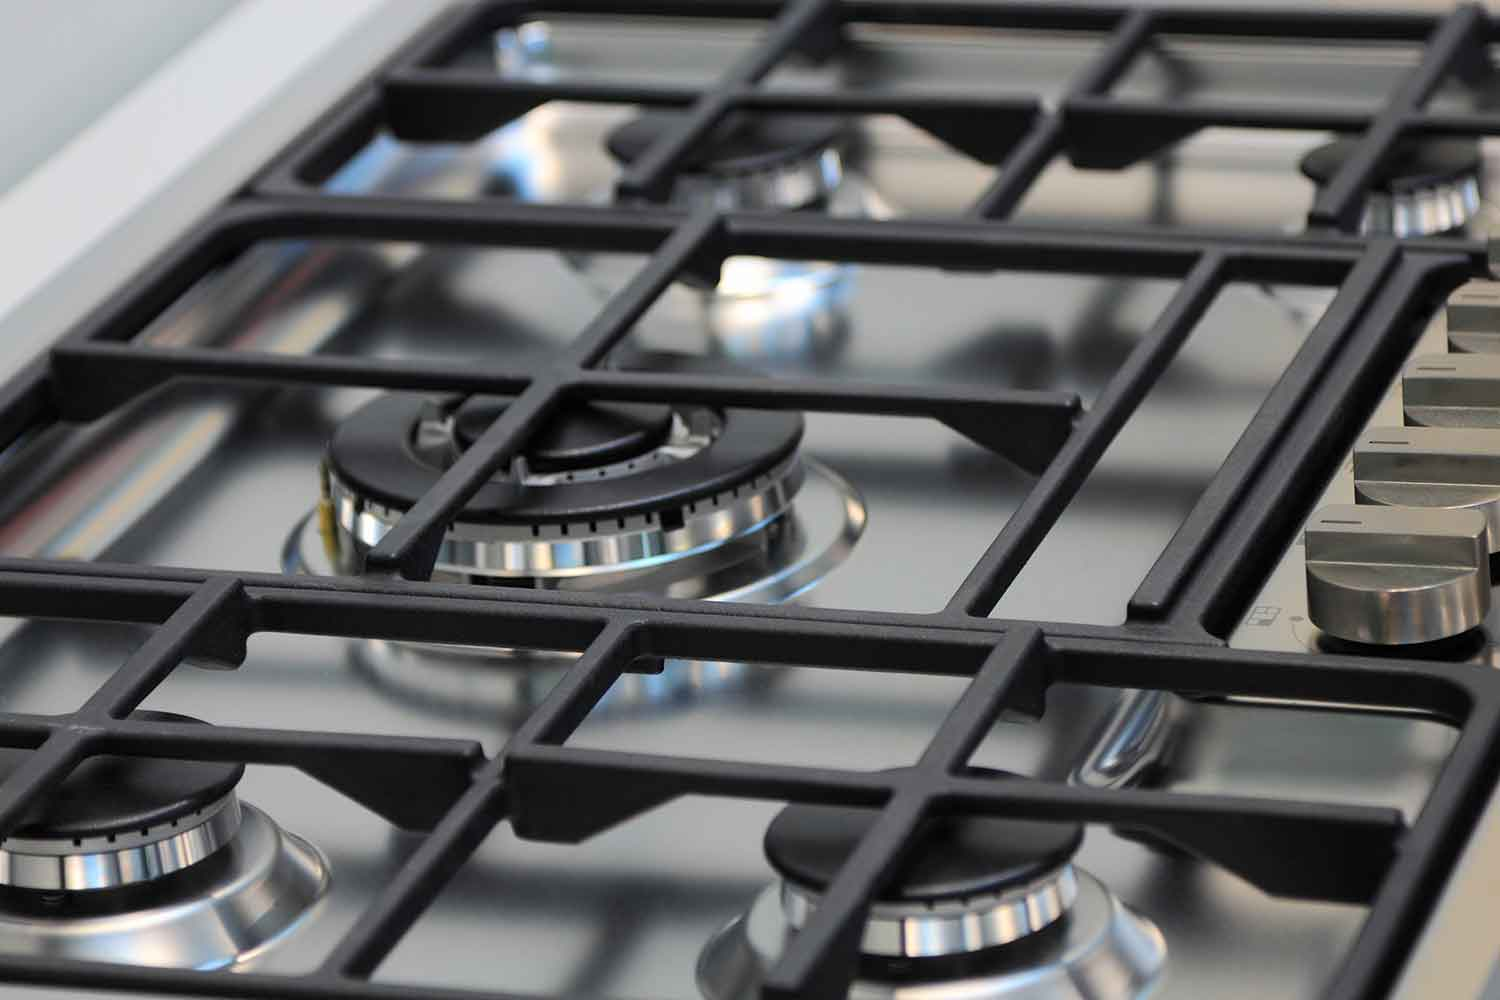 e5f8b2a419 How to clean stove grates | Better Homes and Gardens